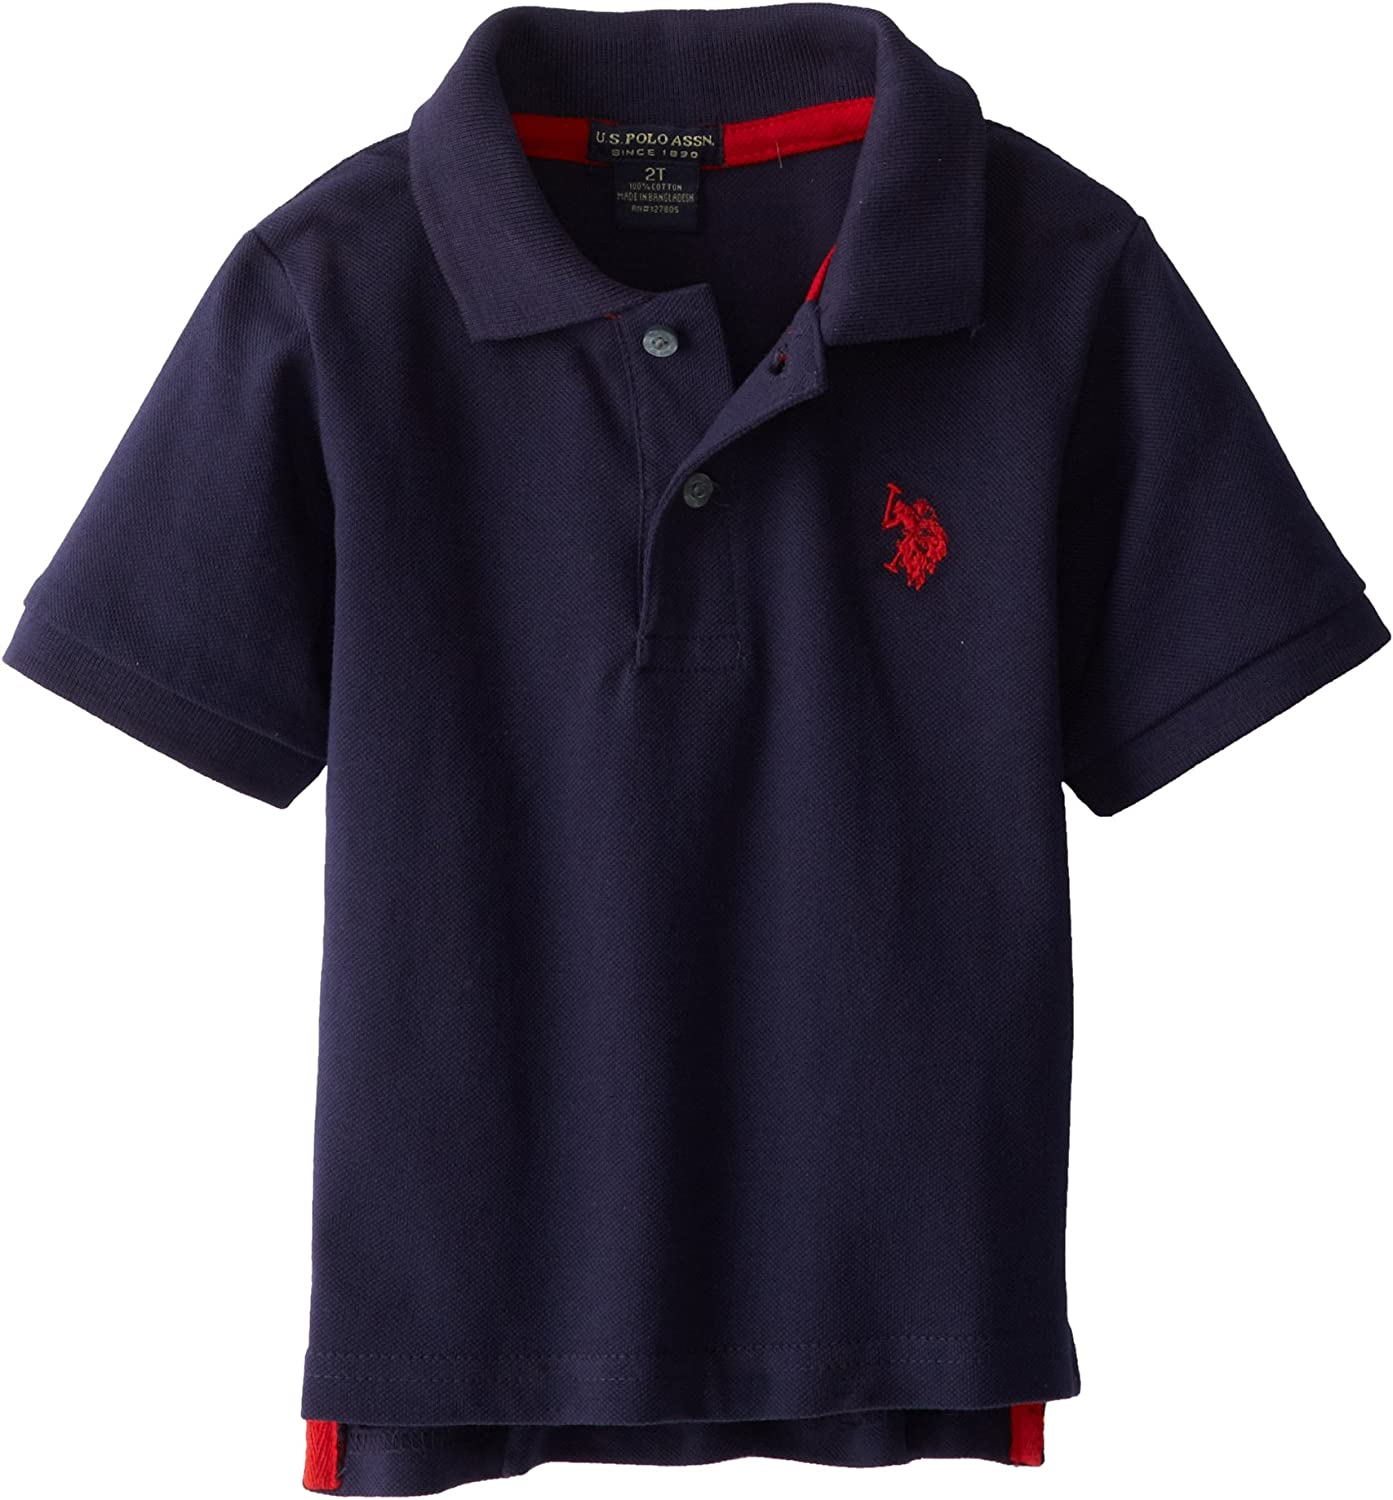 U.S Polo Assn Boys Classic Polo Shirt